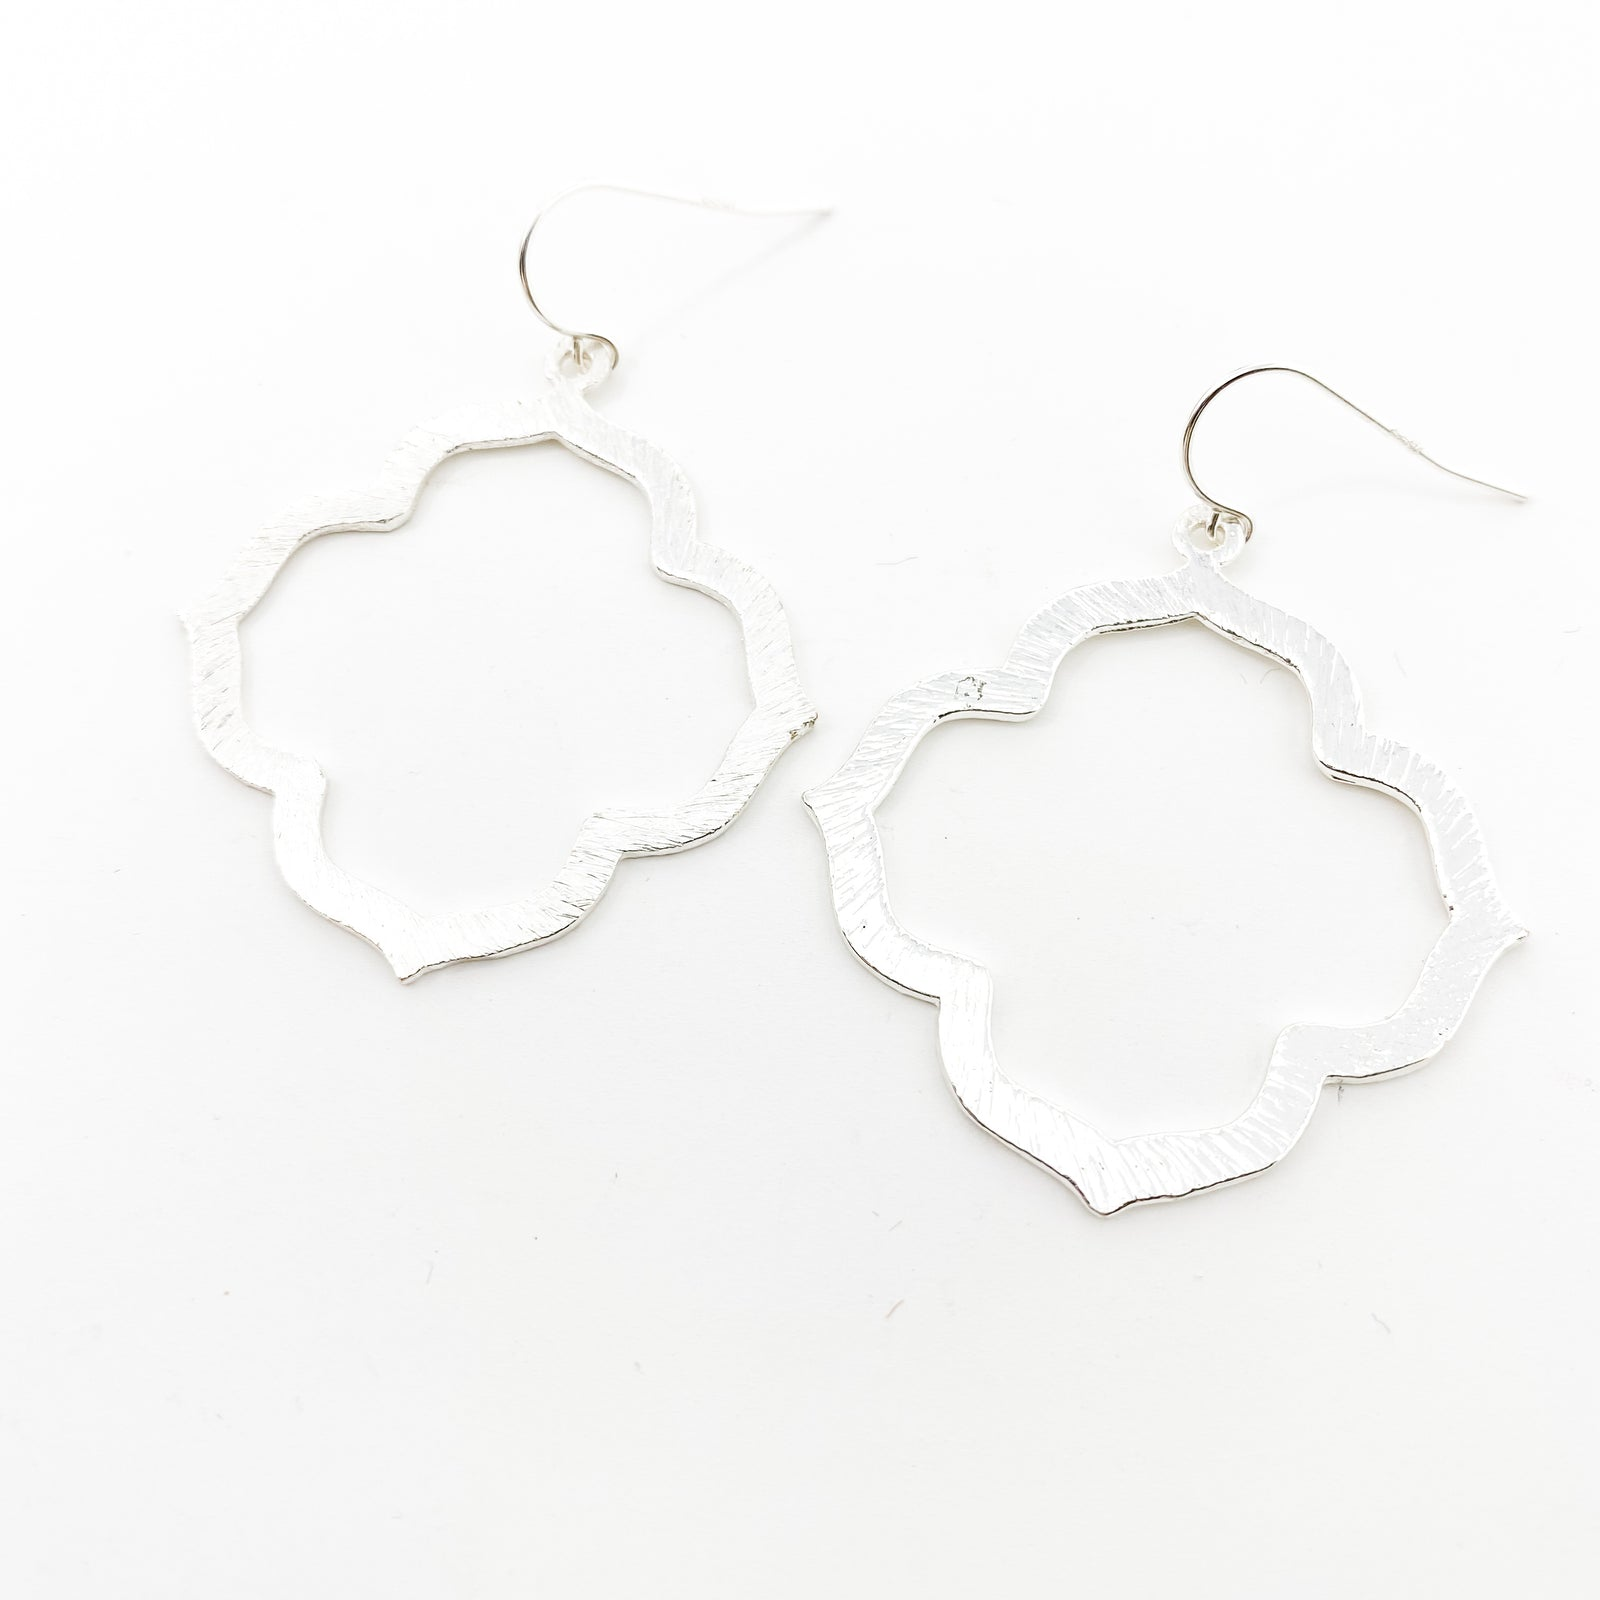 BRUSHED VAN CLEEF EARRINGS | STERLING SILVER | SIZE OPTIONS